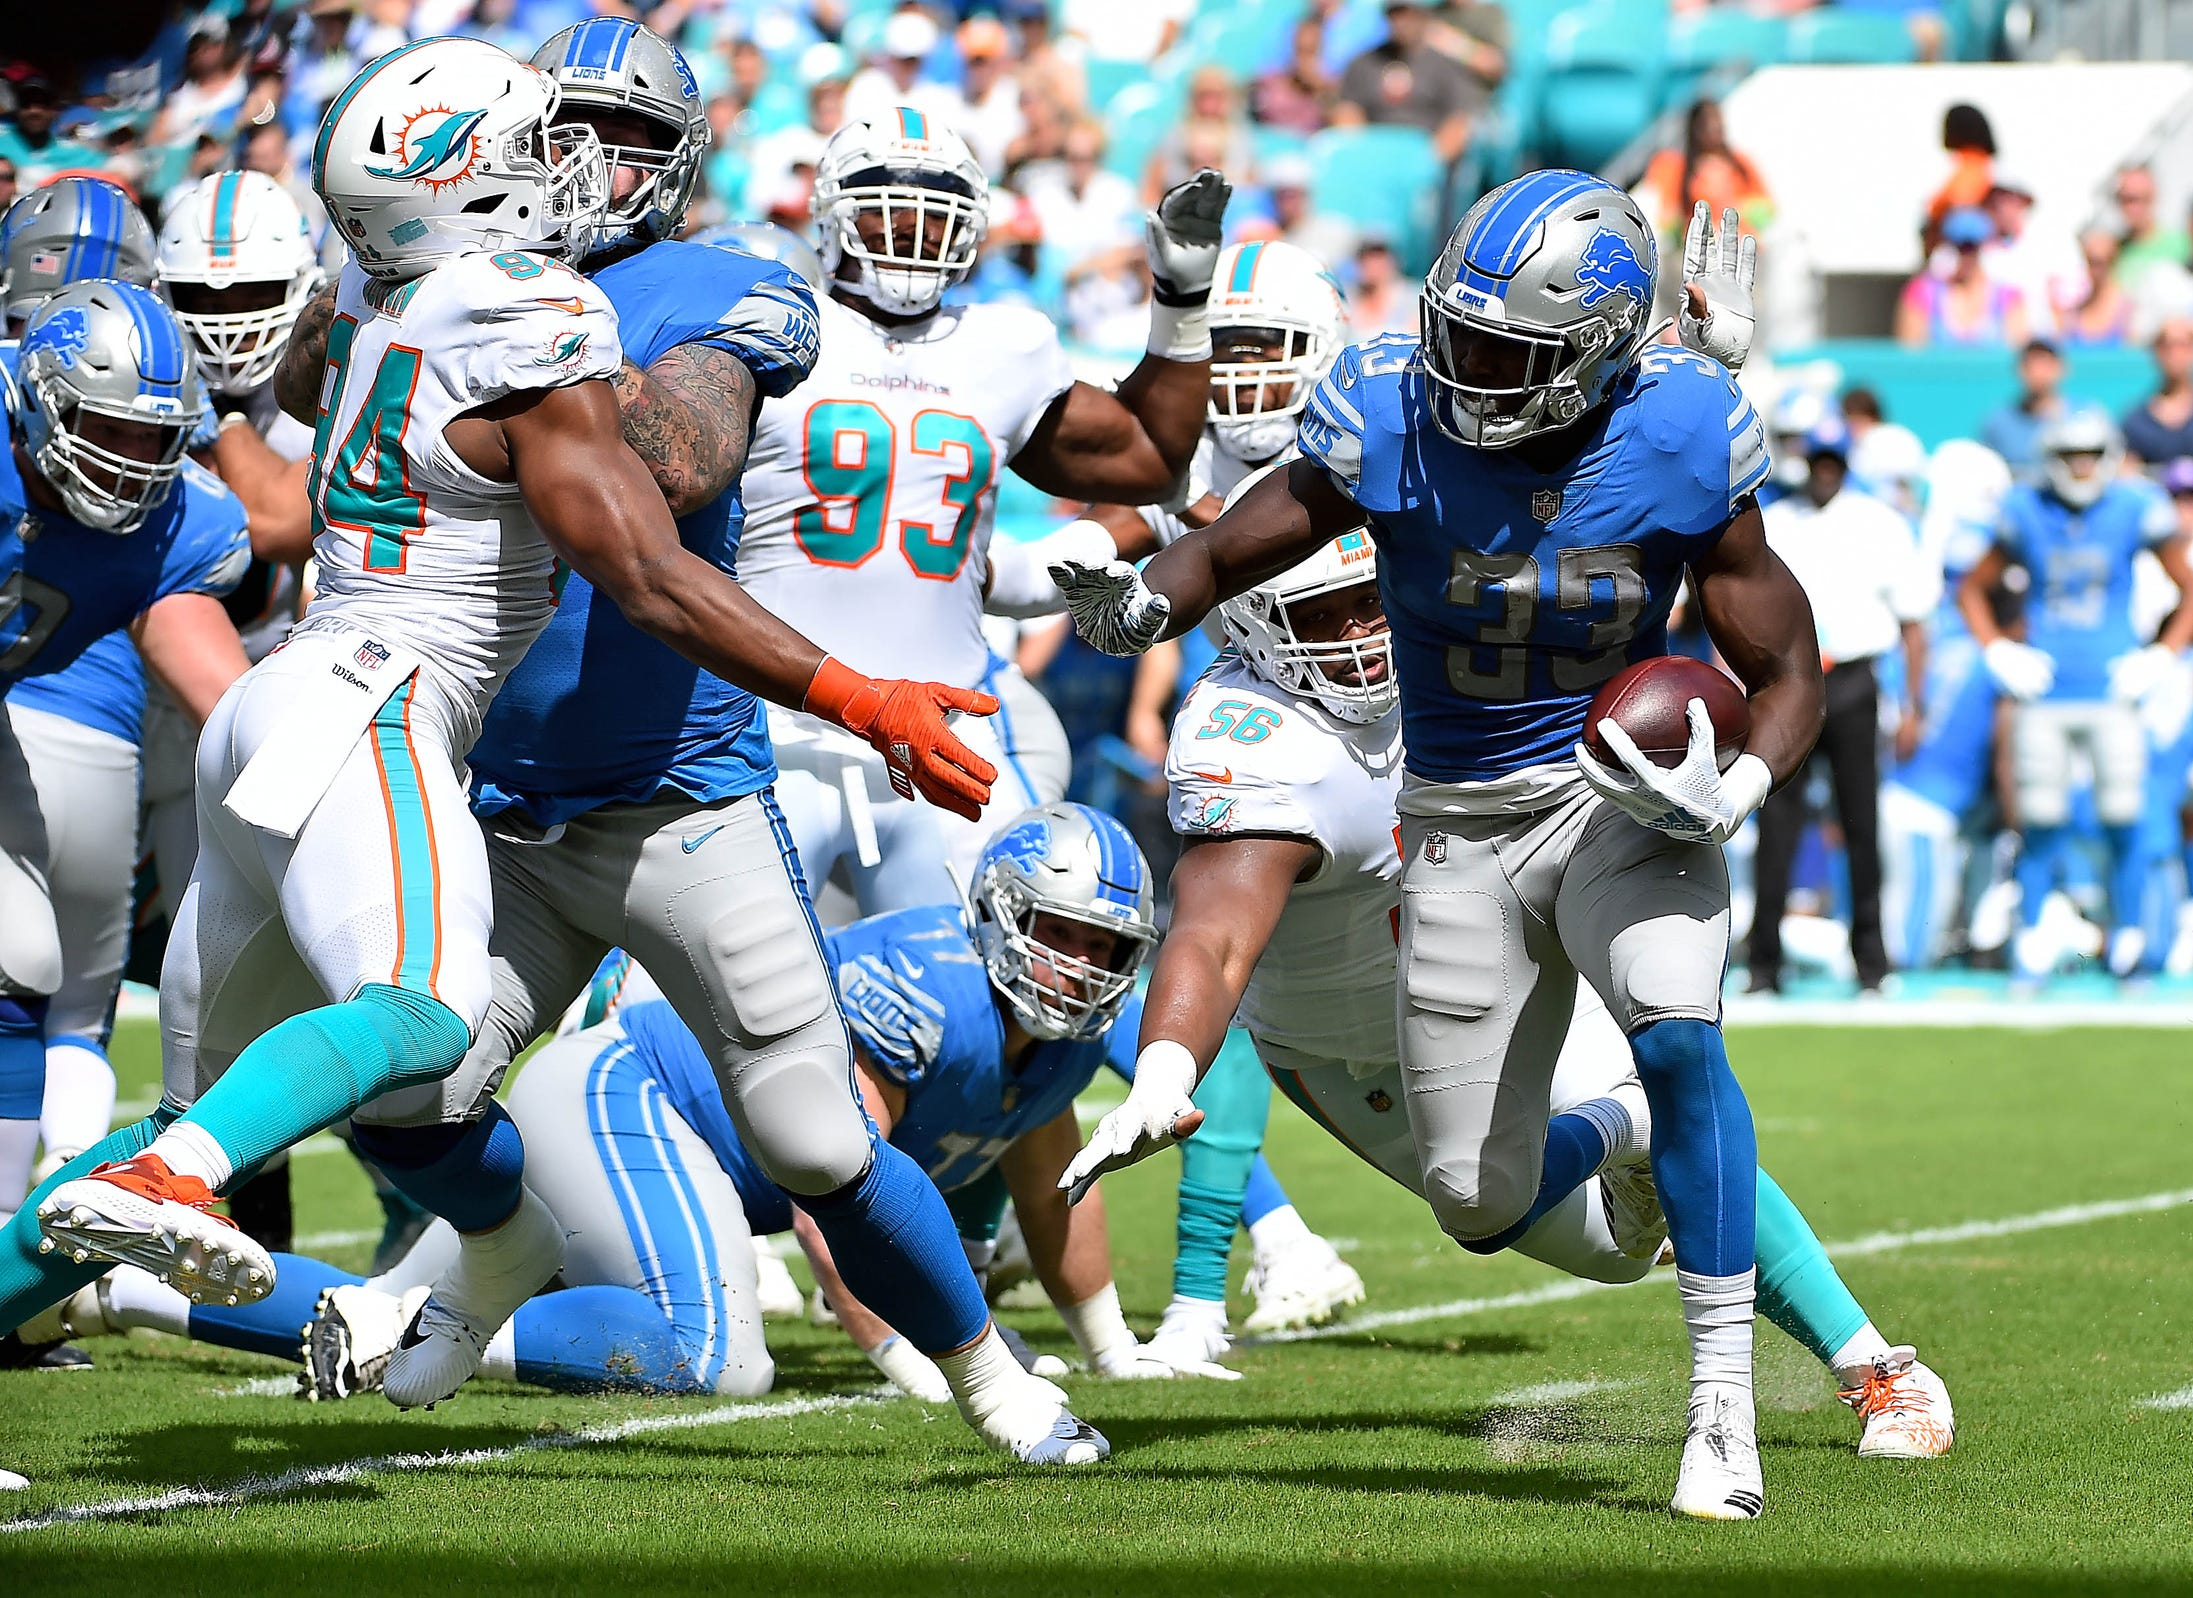 Nfl Detroit Lions At Miami Dolphins